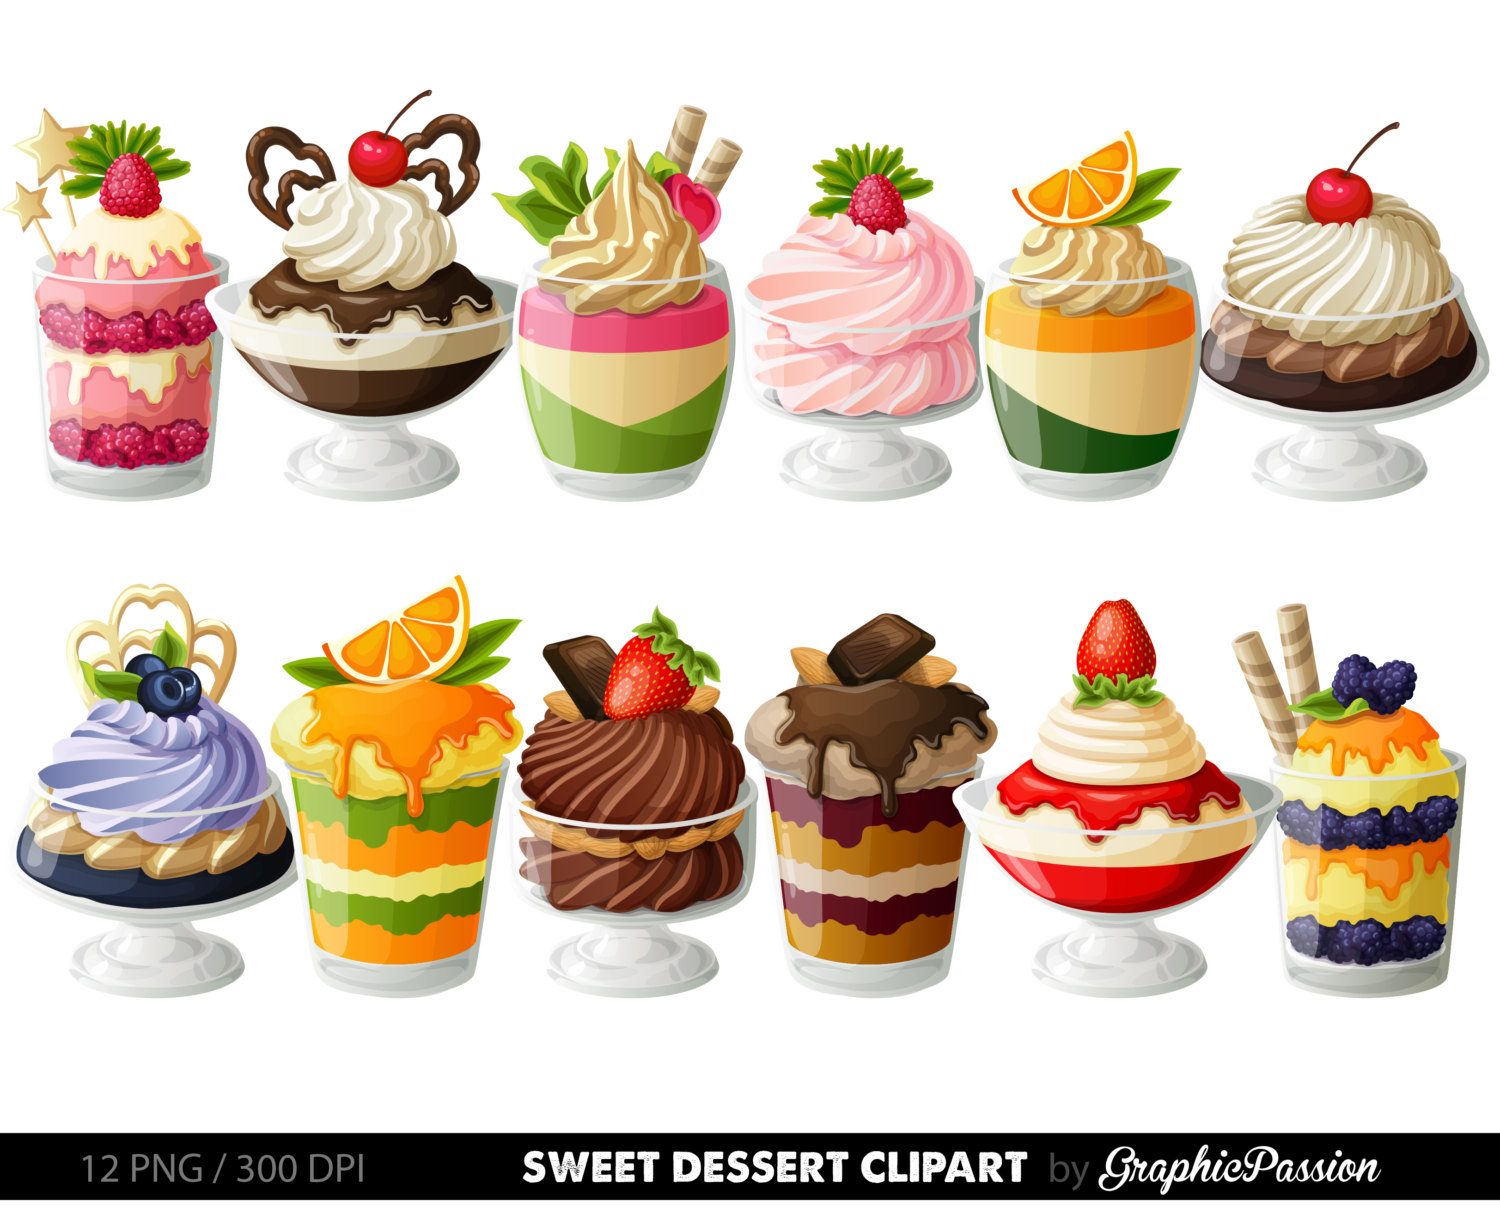 Desserts clipart, Desserts Transparent FREE for download on.